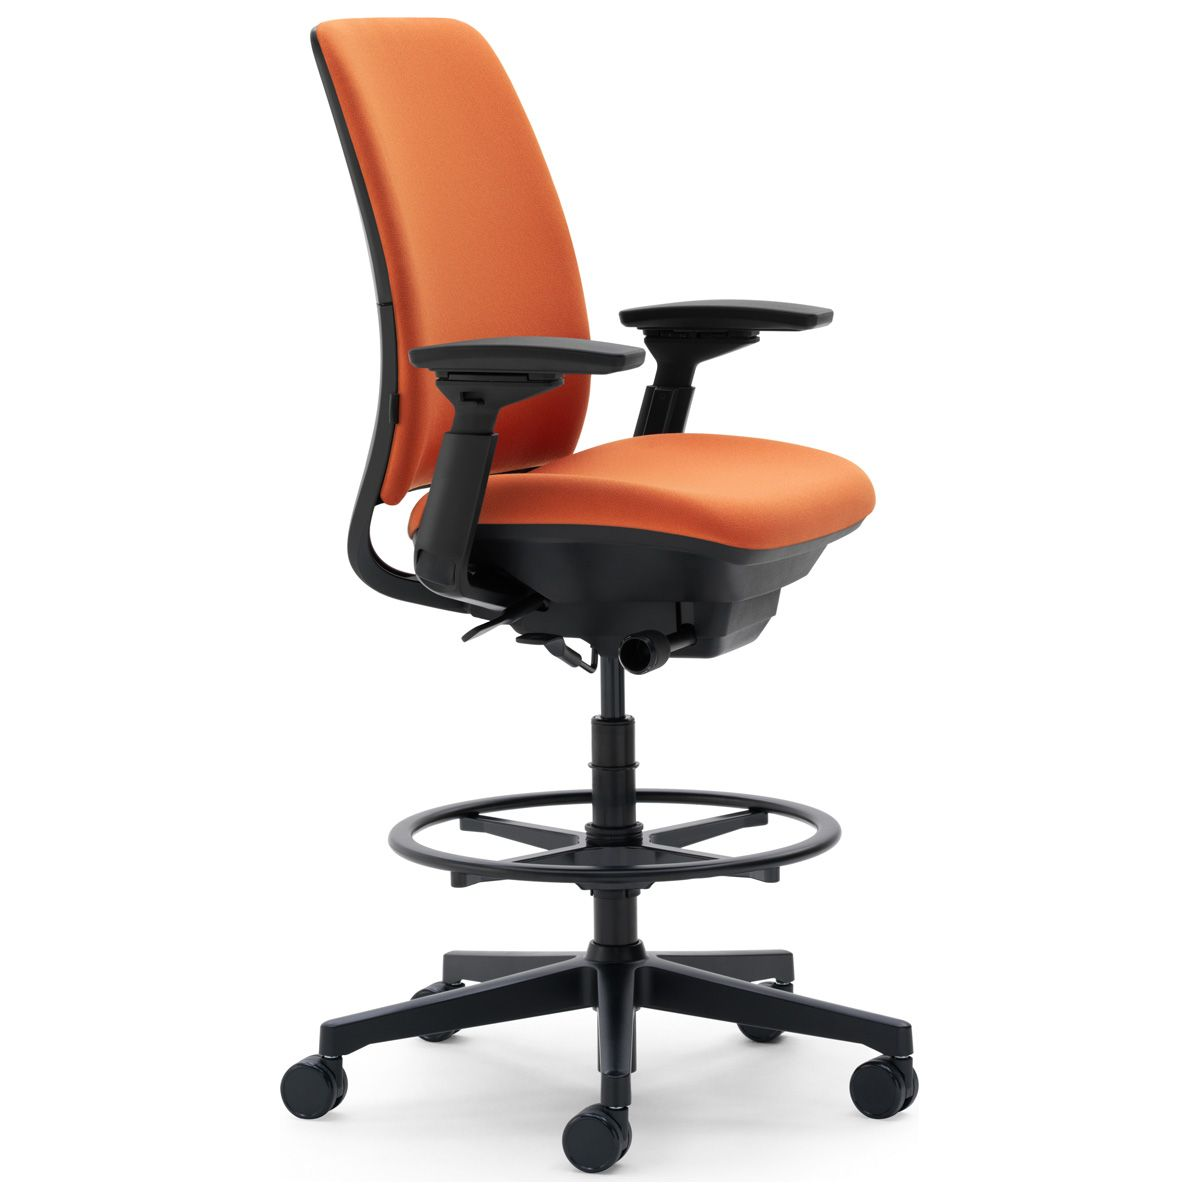 Steelcase Amia Drafting Chair Drafting Chair Chair Seating